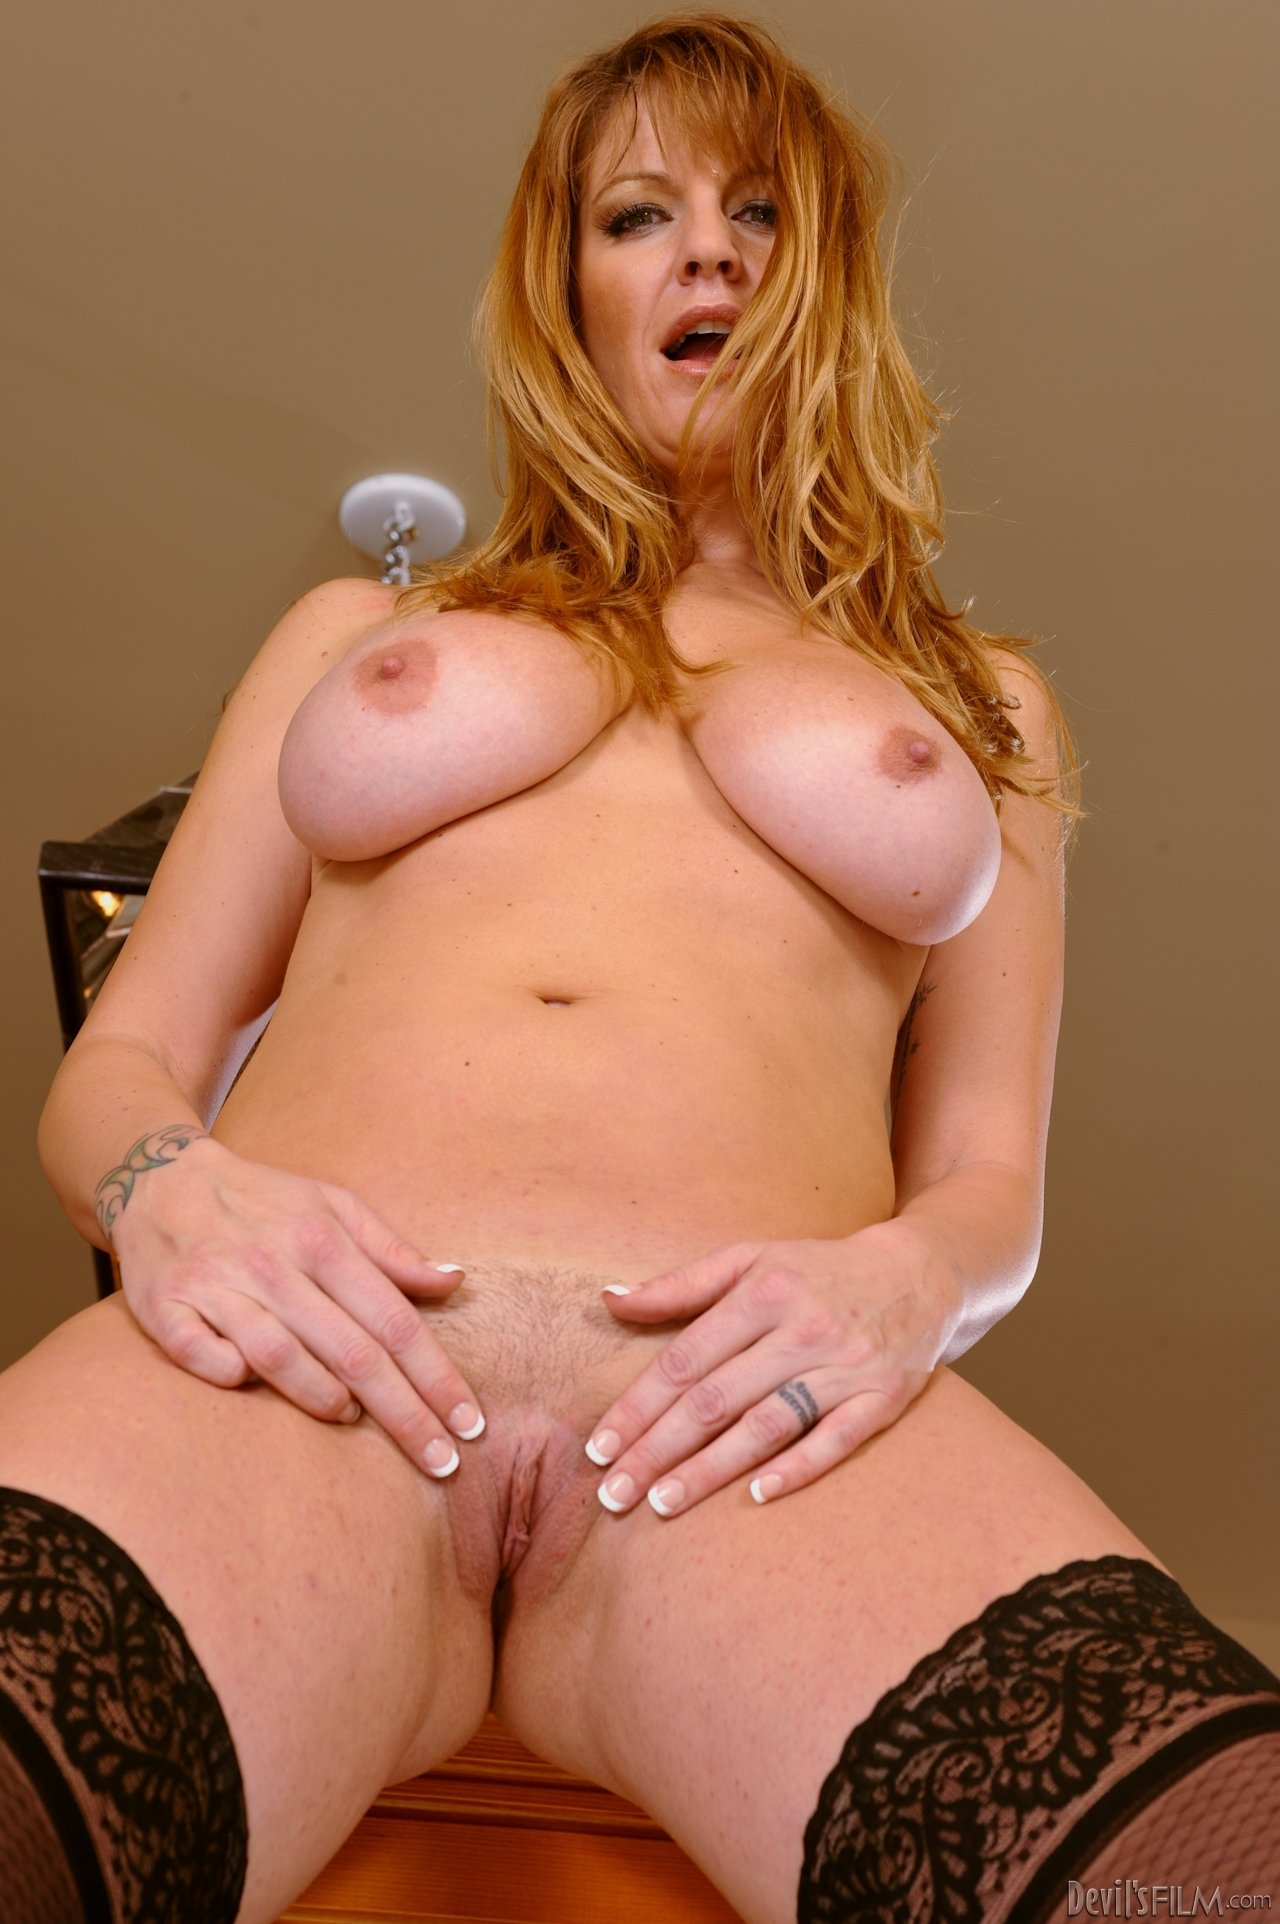 Fat hairy woman pic